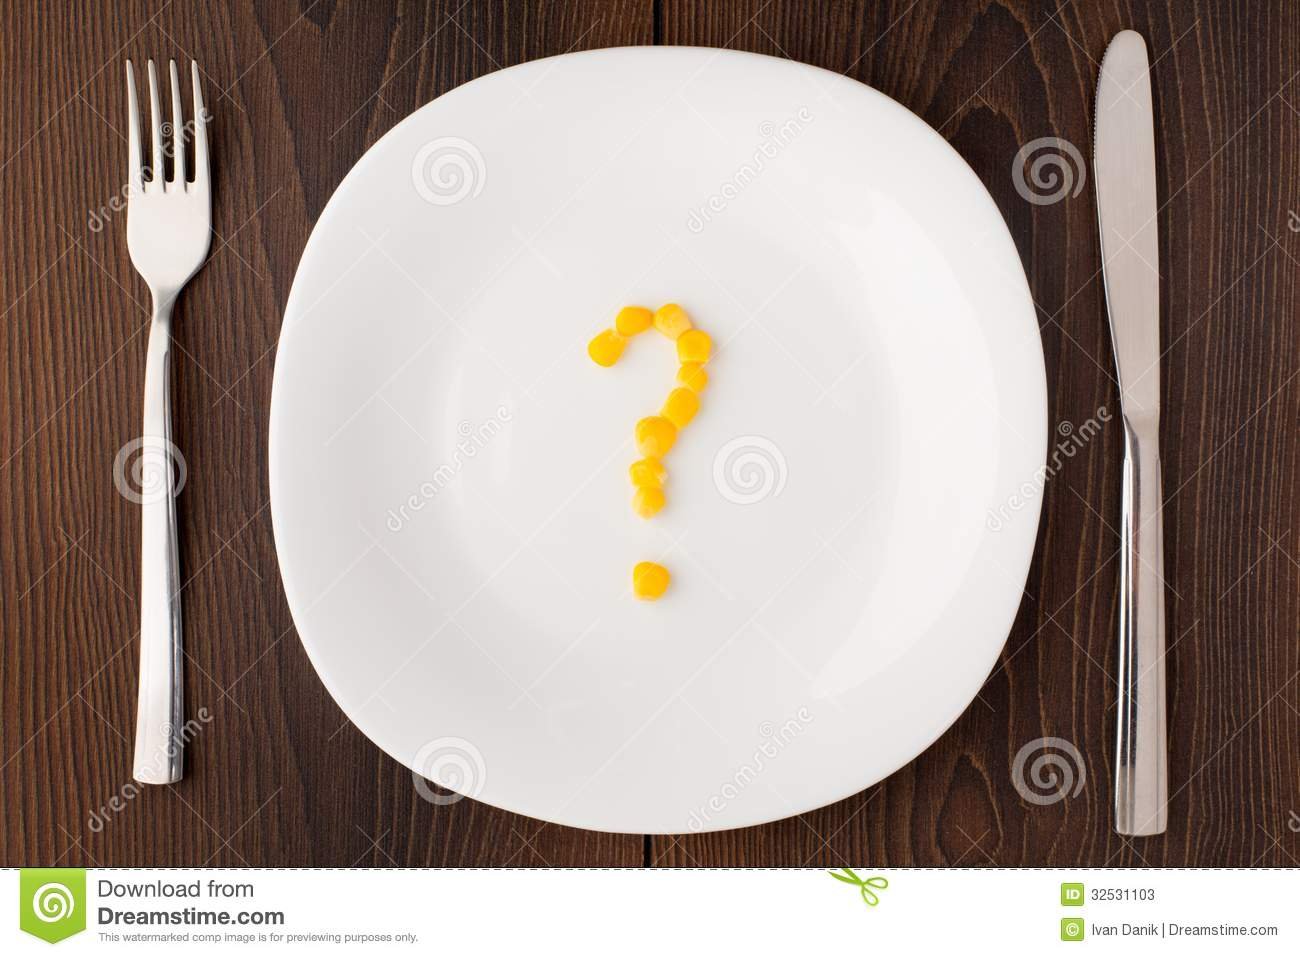 Question Mark Made Of Corn Seeds On Plate Stock Image